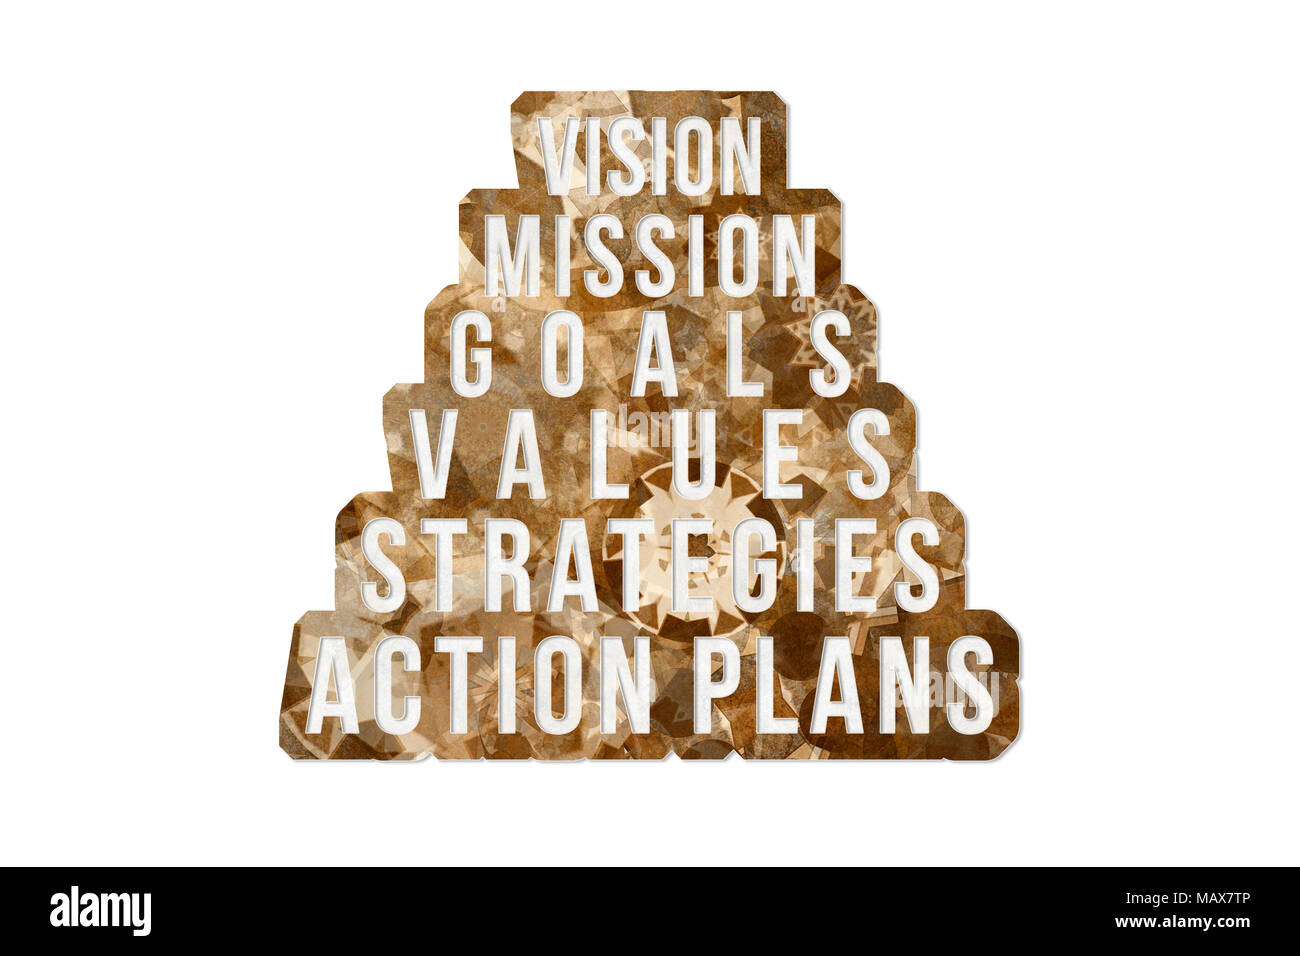 Vision Mission Goals Values Strategies Action Plans Abstract Business Conceptual Words With Brown Texture As Background For Web Page Graphic D Stock Photo Alamy